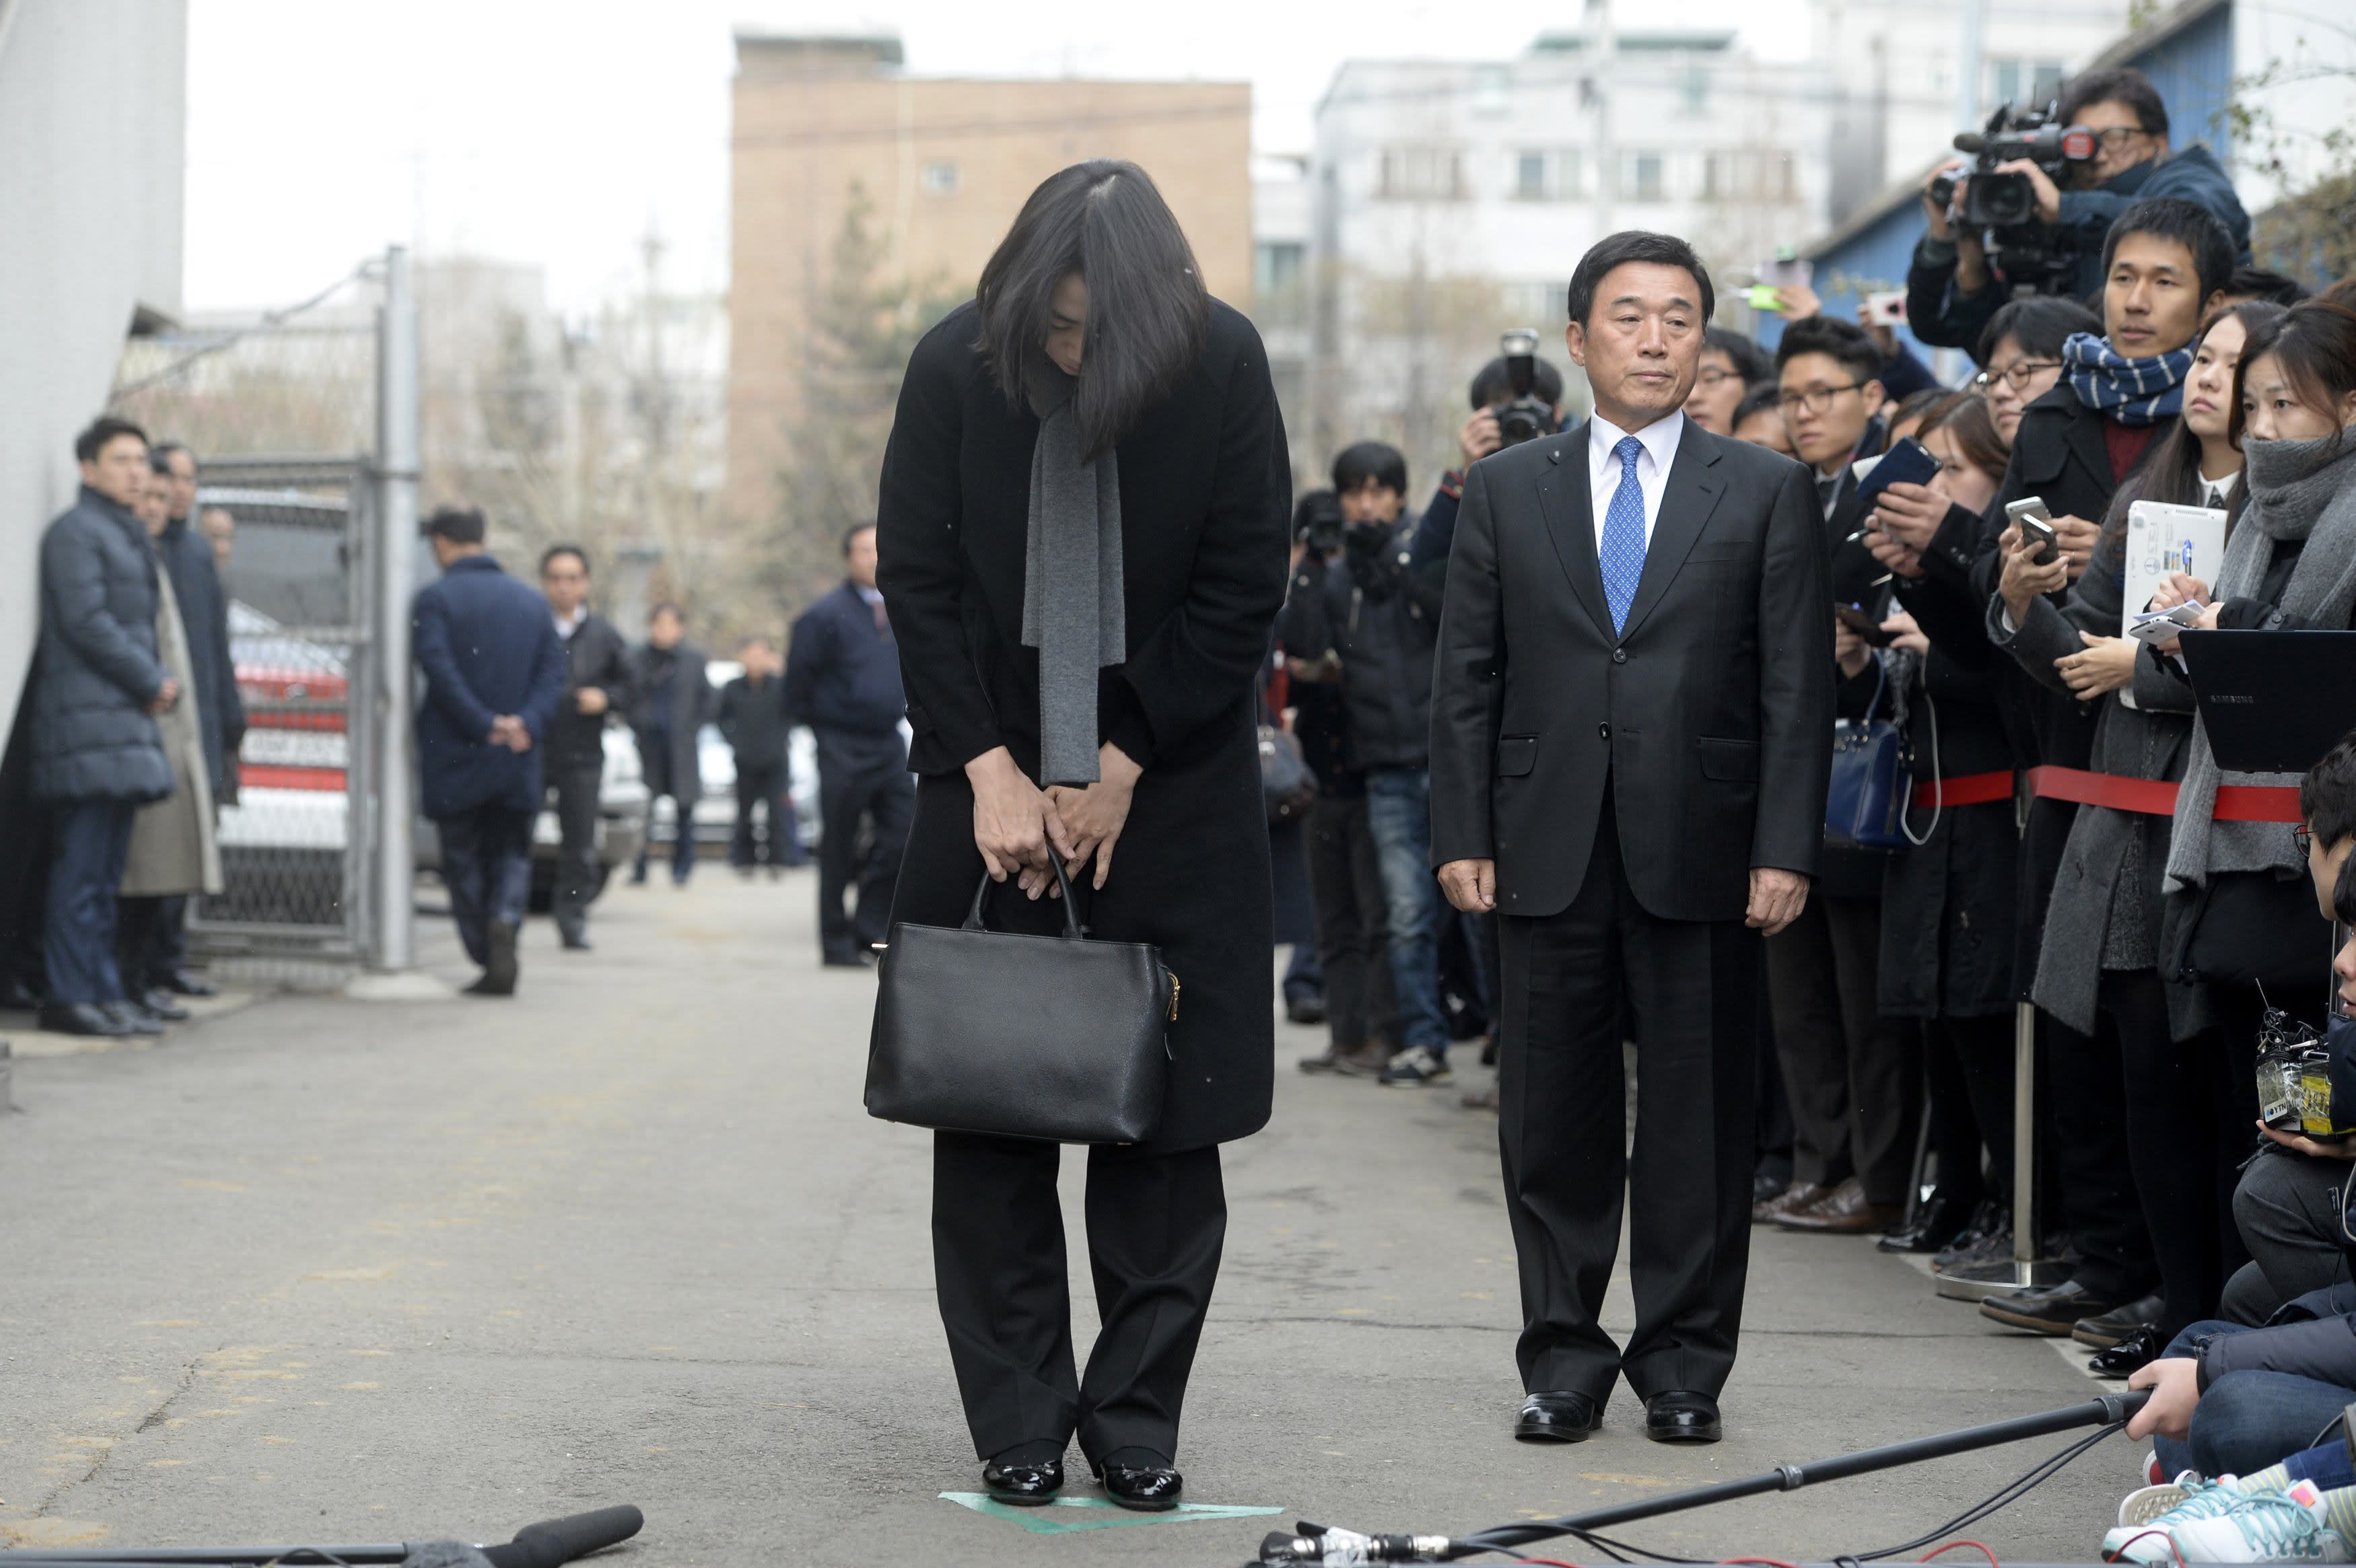 Korean Air Executive Apologizes After Nuts Incident Sparks